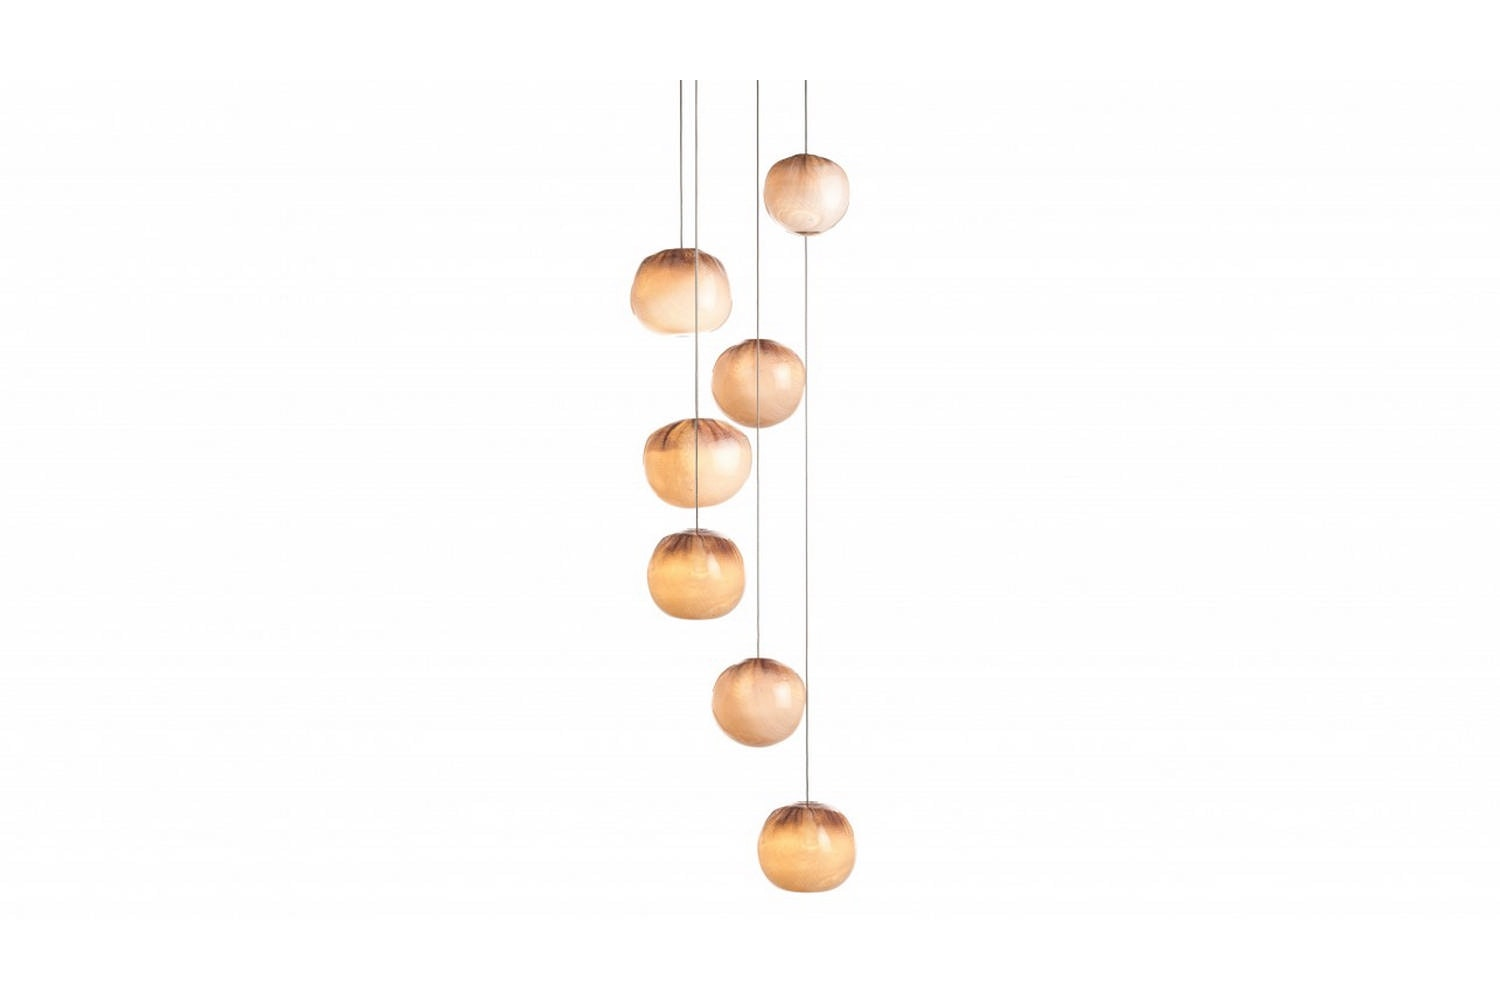 84.7 Suspension Lamp by Omer Arbel for Bocci